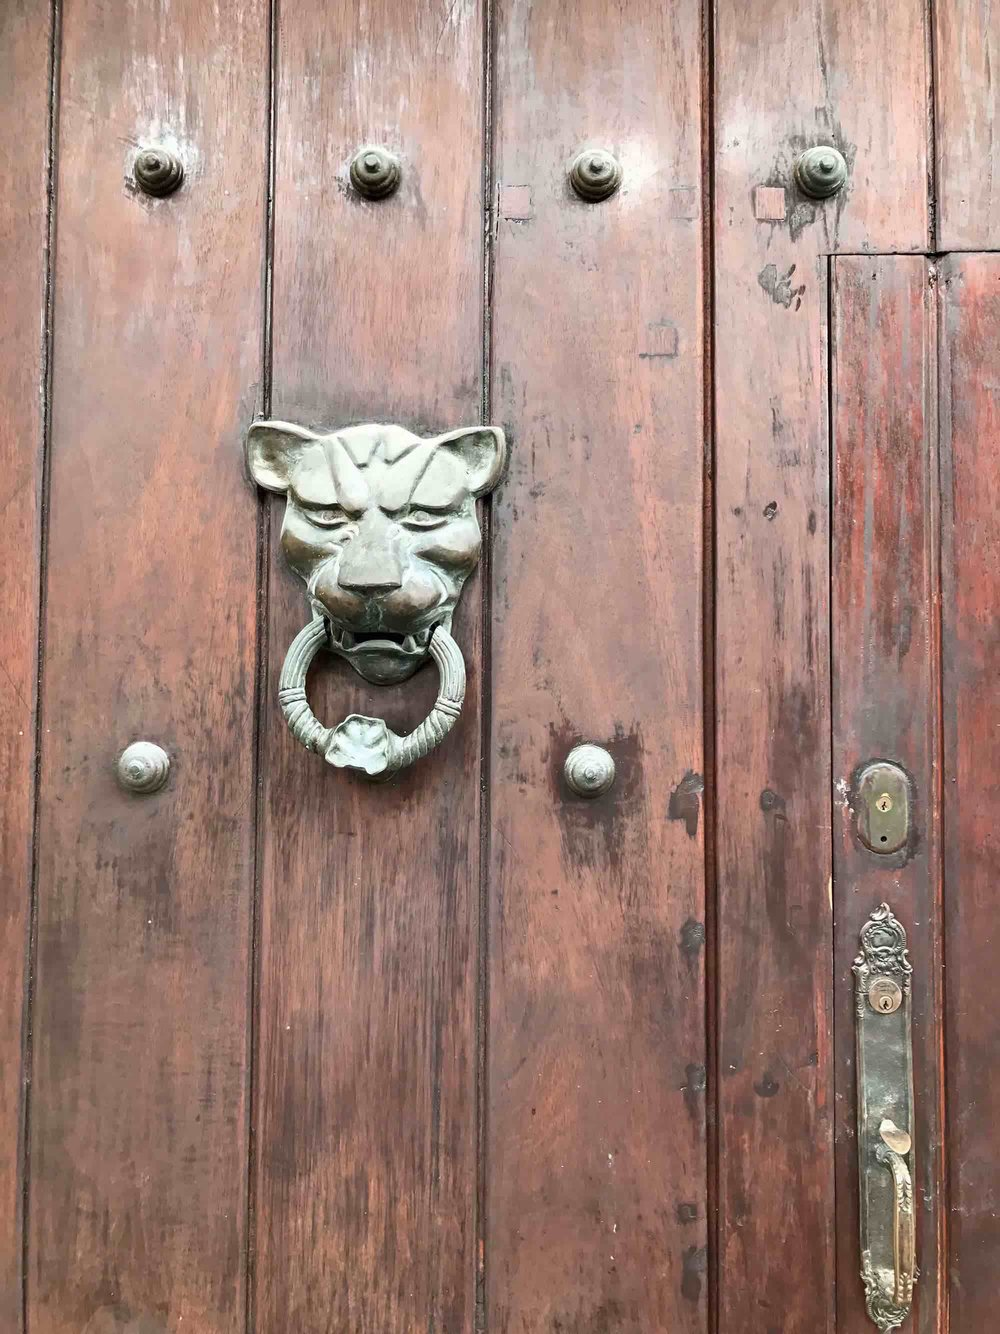 Lion door knocker | Doors and Door Knockers of Cartagena, Colombia